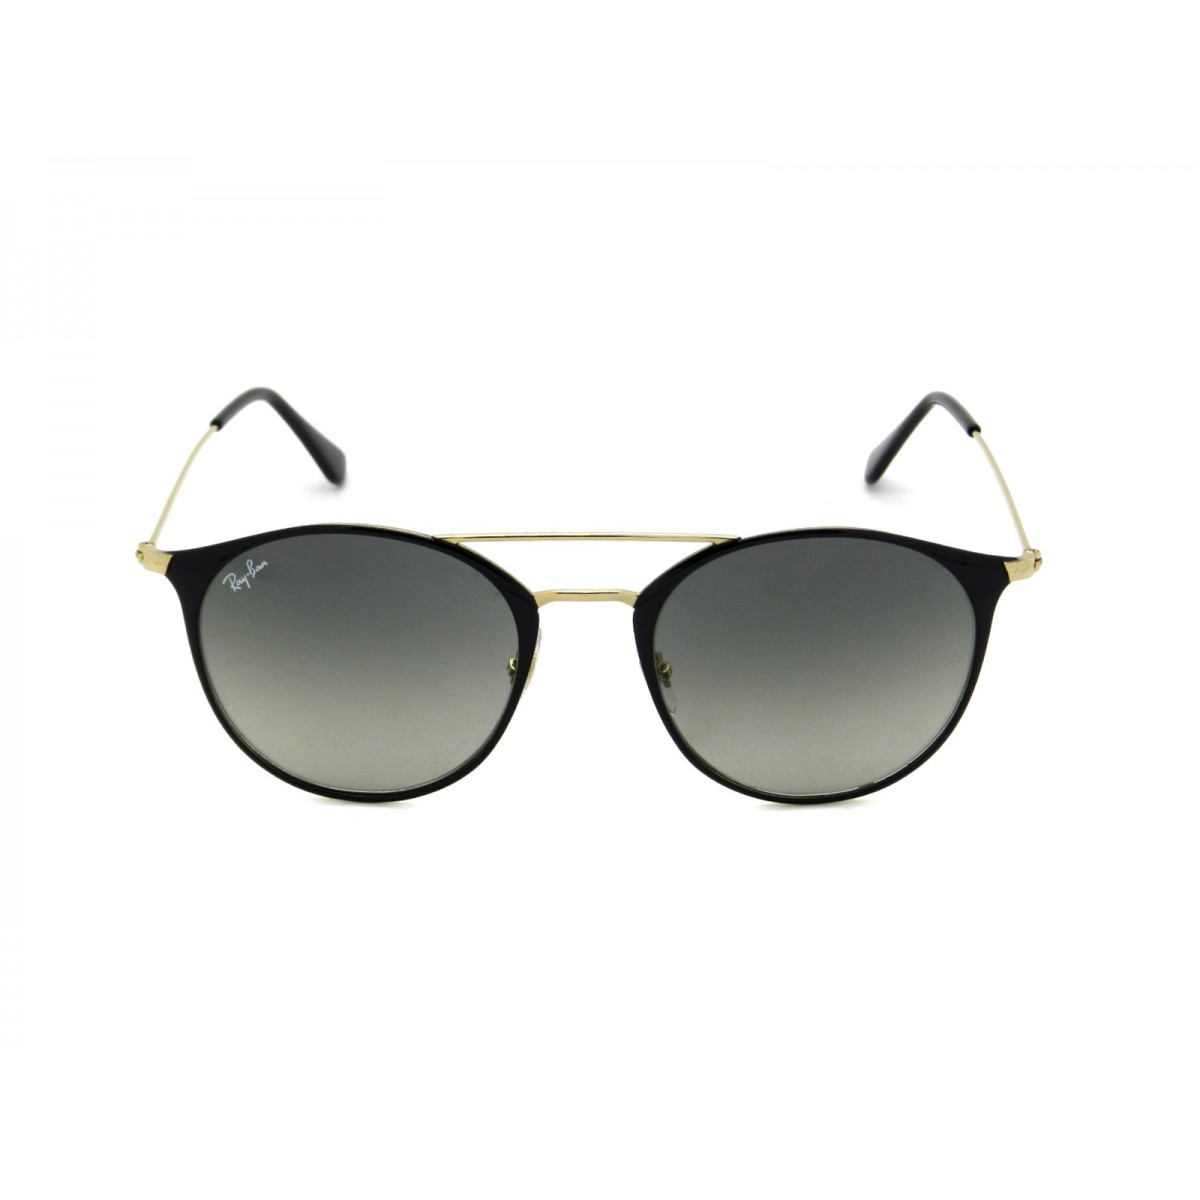 37e6f69bc402aa Ray Ban Black Gold Round Unisex Sunglasses RB3546-187 71-52 ...